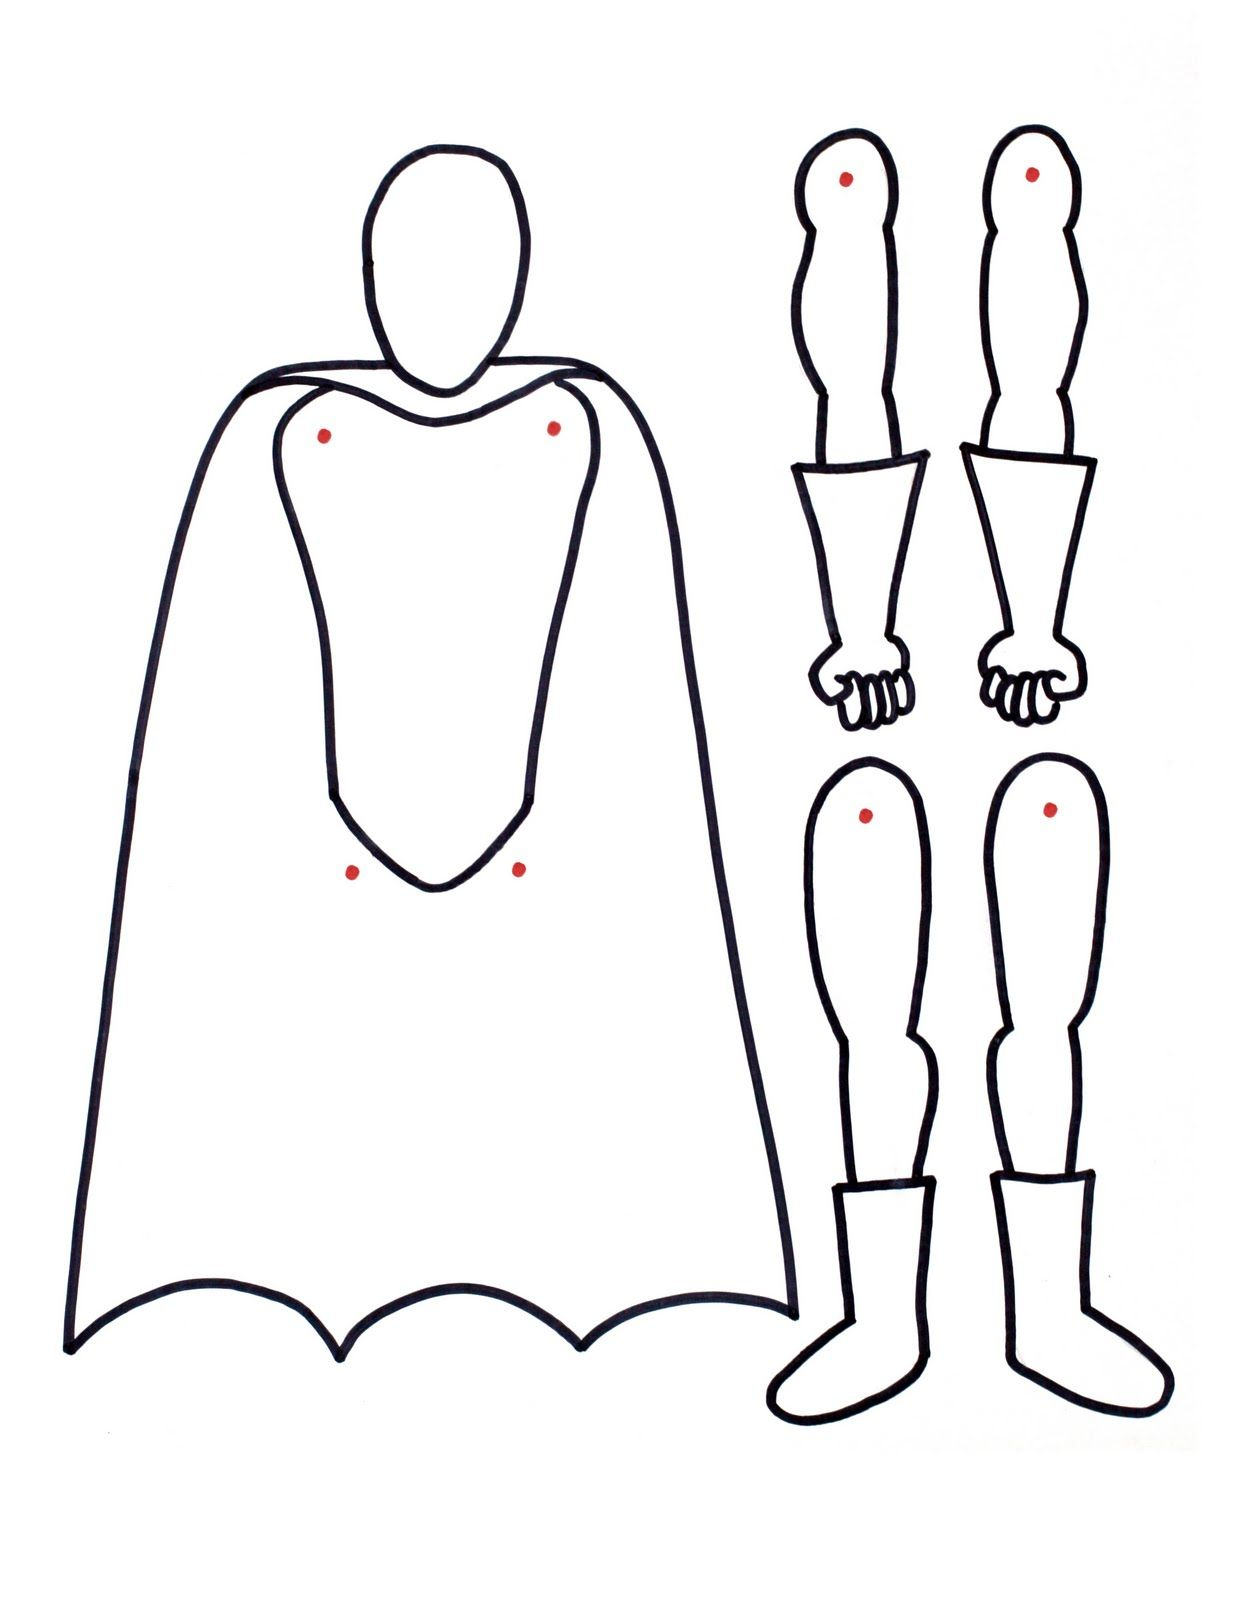 Superhero printable with movable arms and legs paper doll color superhero printable with movable arms and legs paper doll color and poke in brass fastener pronofoot35fo Image collections